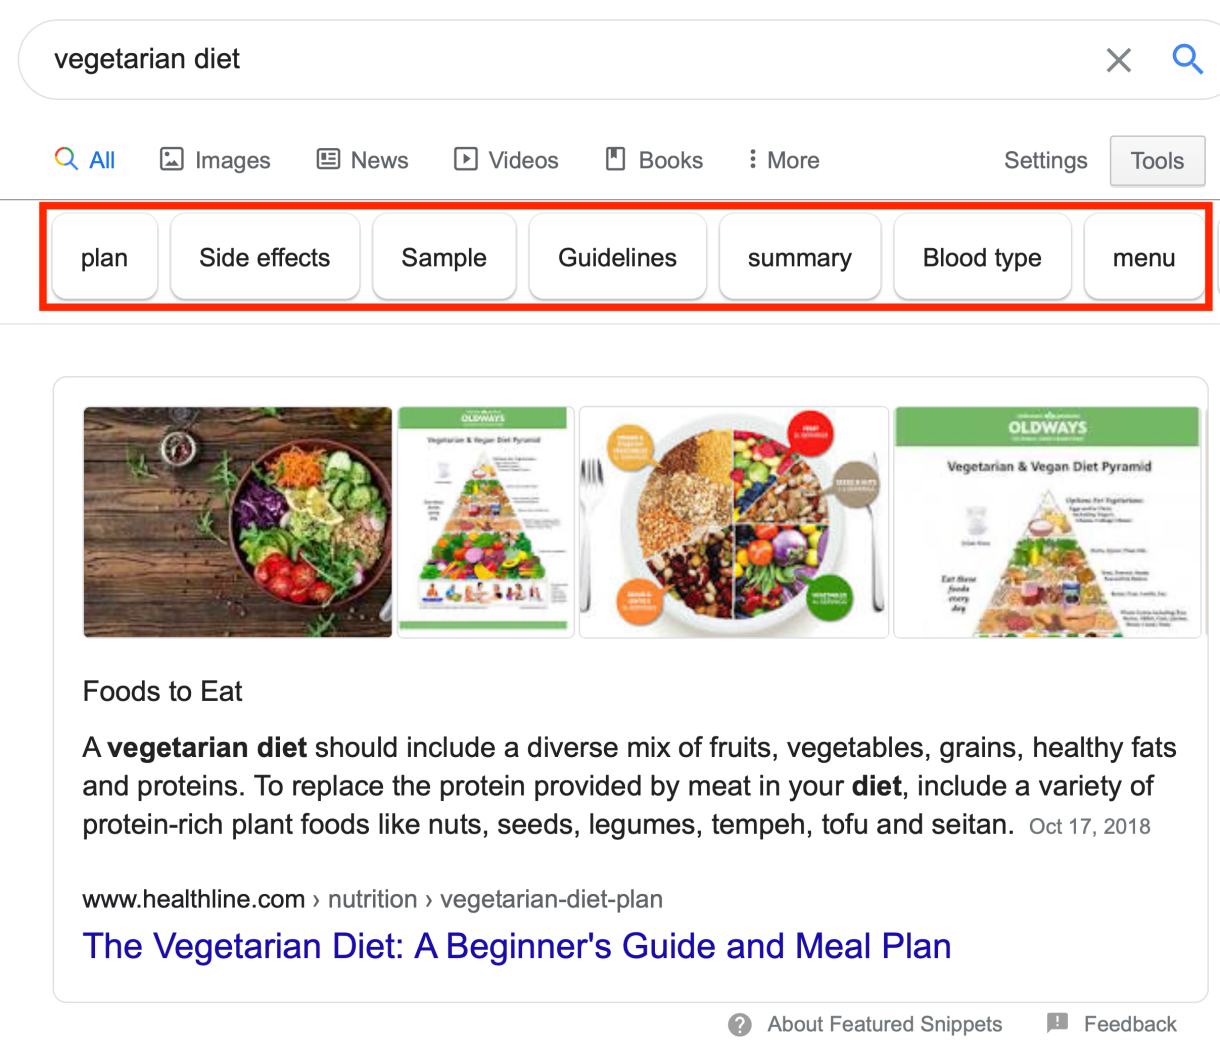 Featured Snippet Box